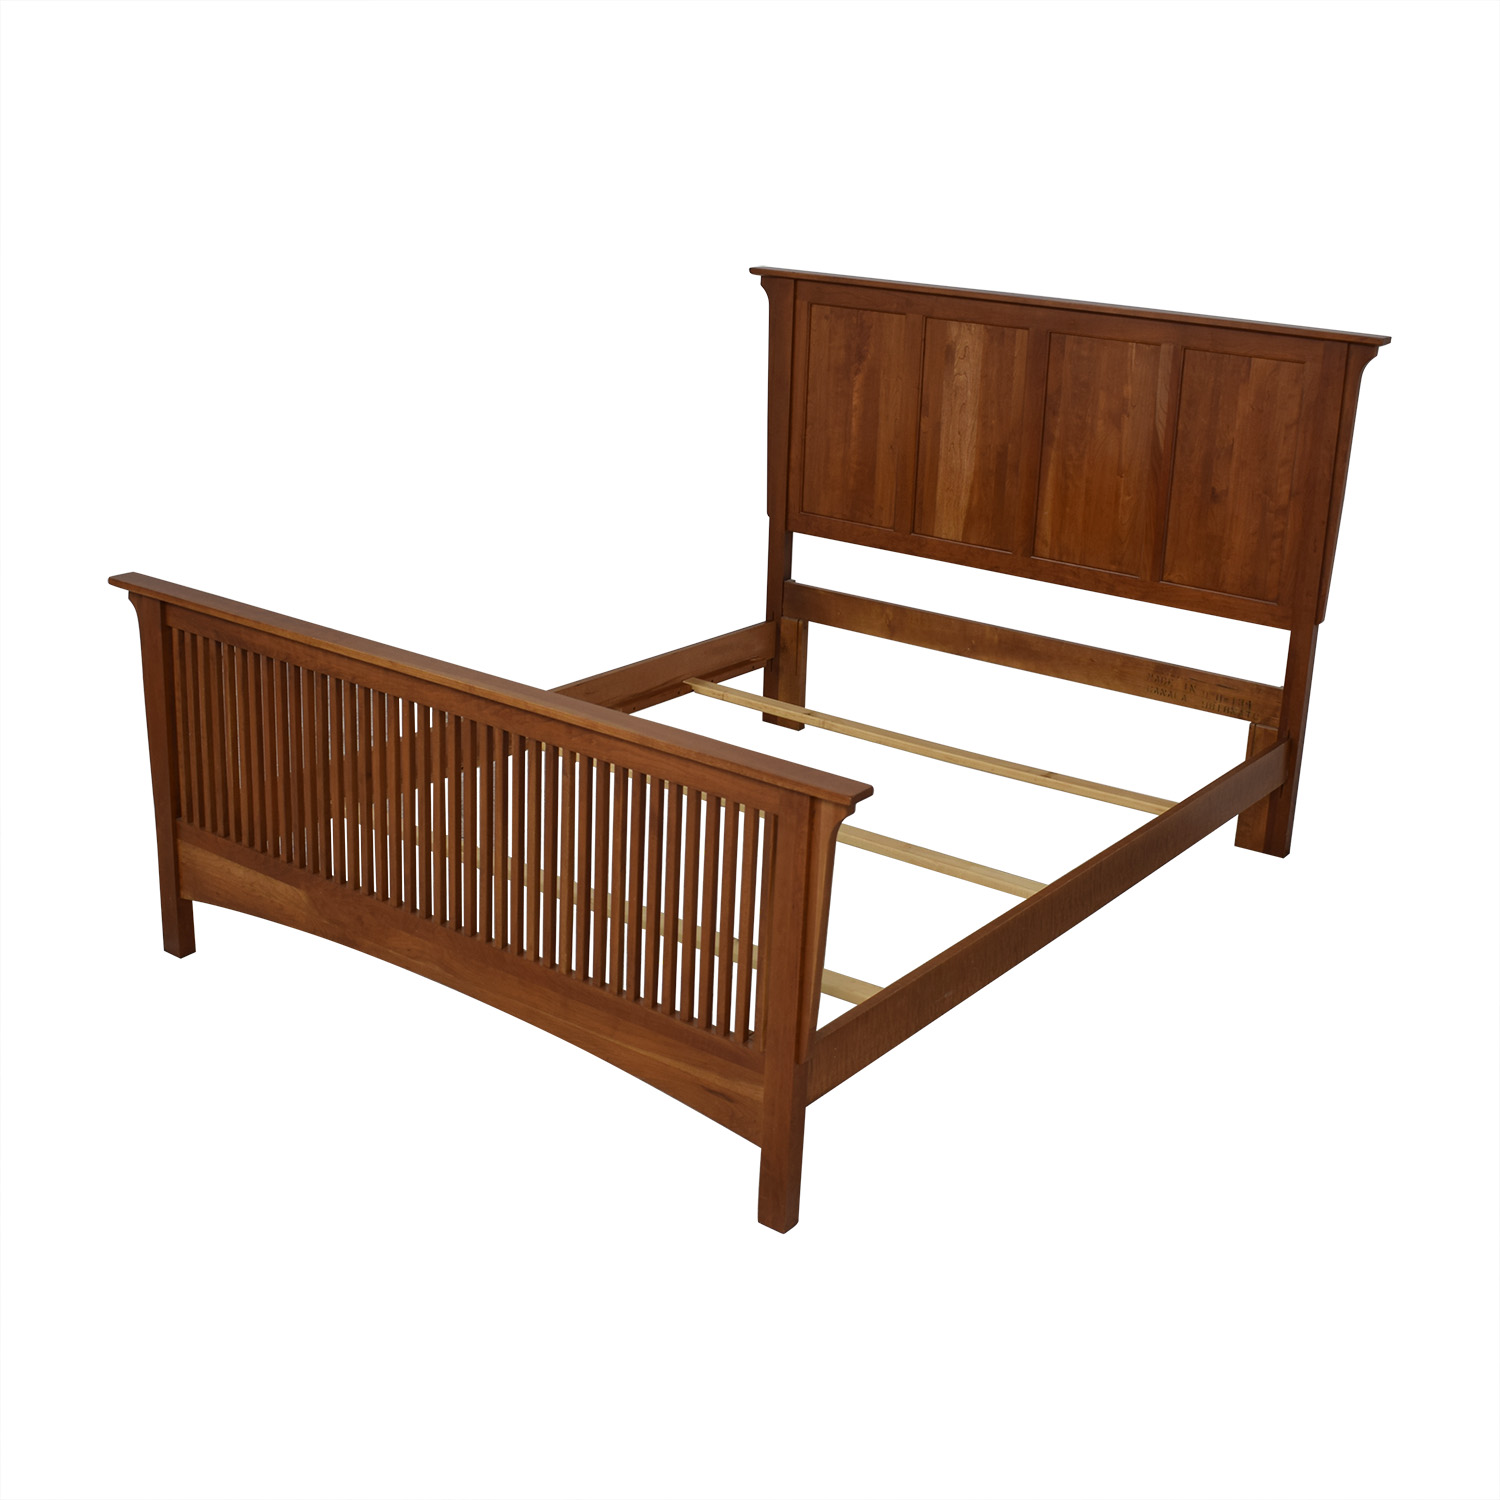 Queen Bed Frame with Headboard and Footboard coupon